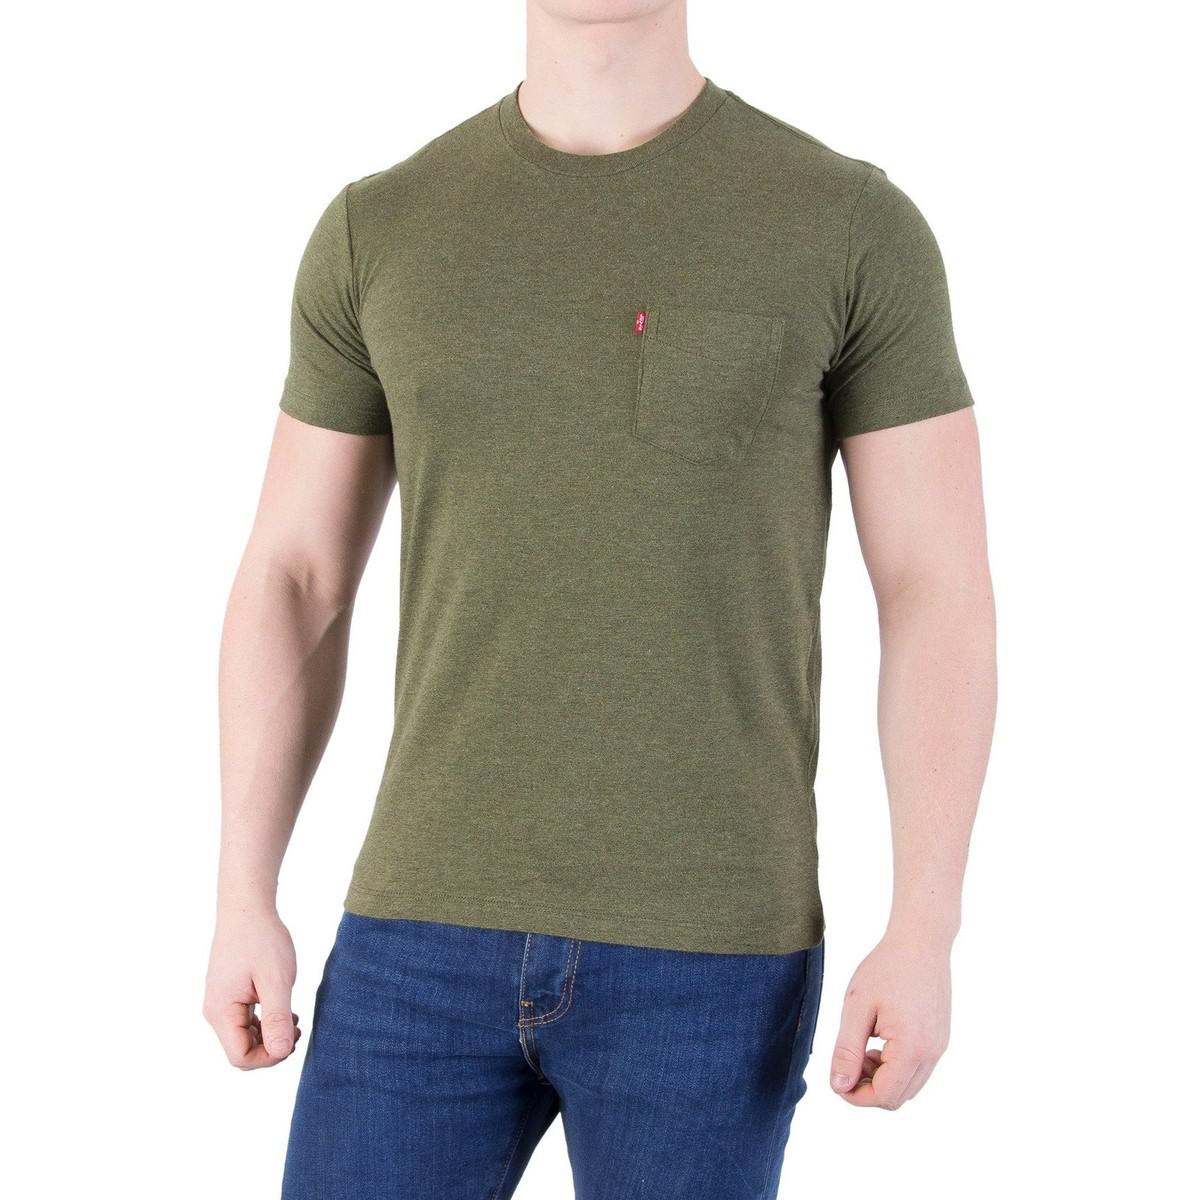 Levi 39 s levis men 39 s setin sunset pocket t shirt green men for Levis t shirt sale